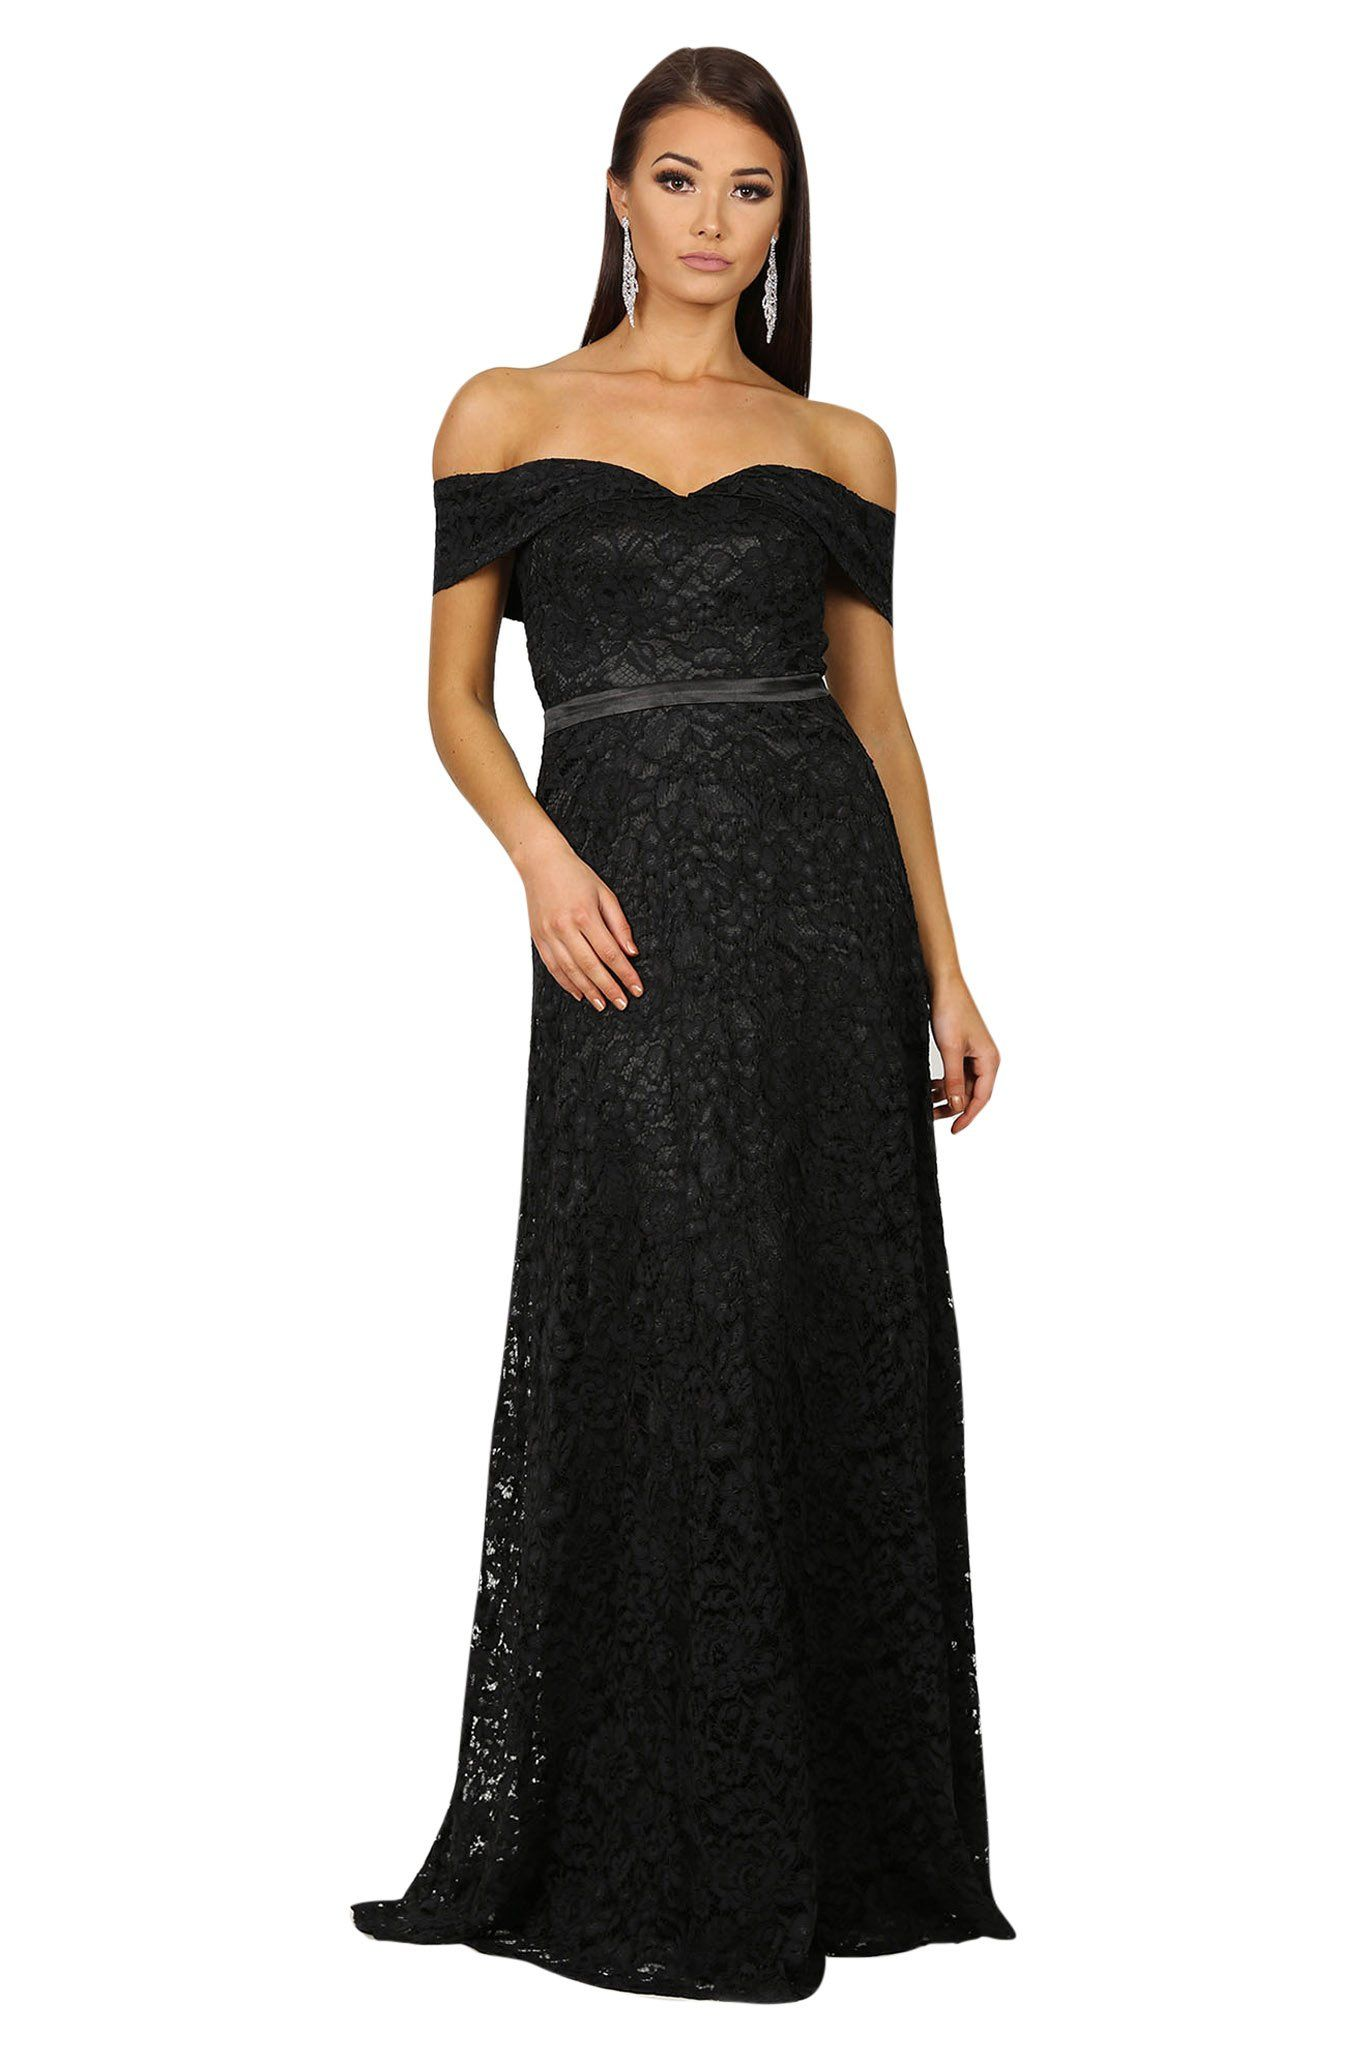 Black lace off the shoulder floor length A-line gown with sweetheart neckline and satin belt